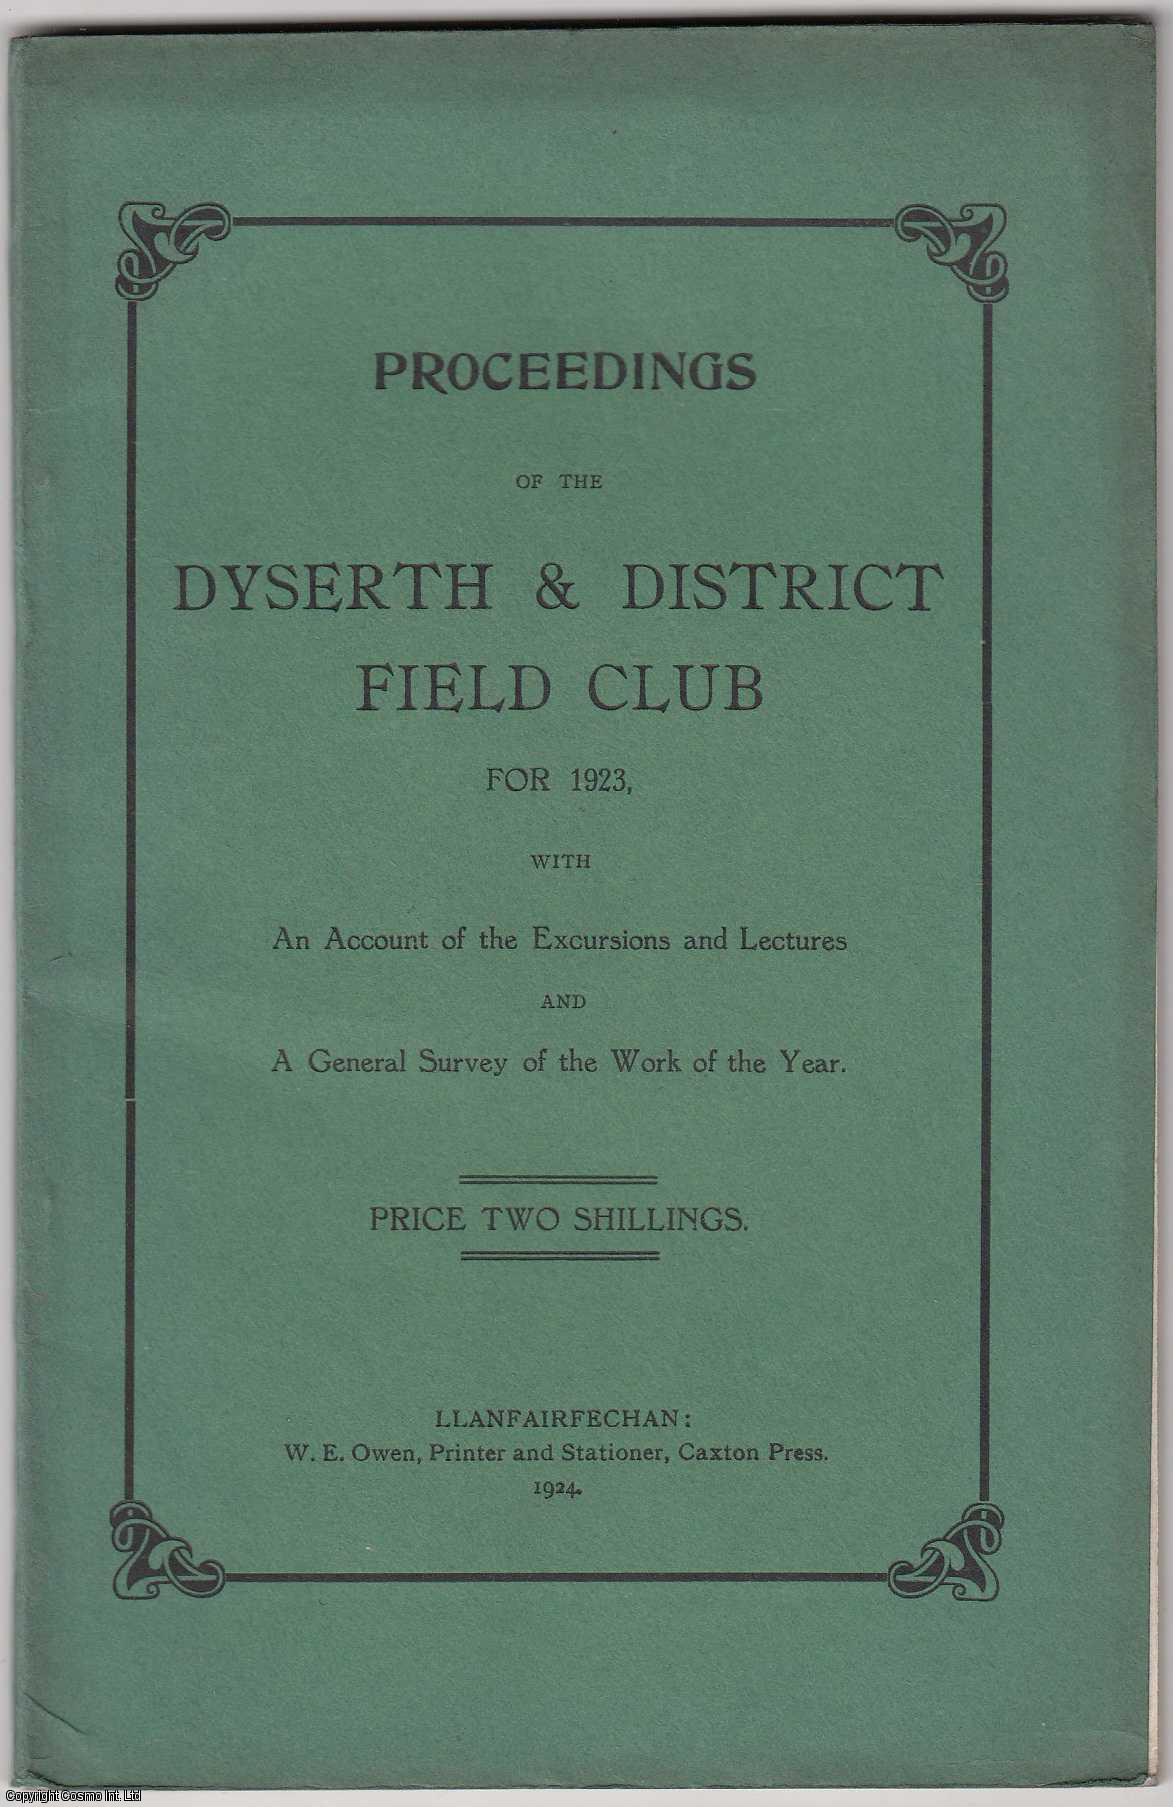 DYSERTH - [1924] Proceedings of the Dyserth and District Field Club for 1923, with An Account of the Excursions and Lectures and a General Survey of the Work of the Year.